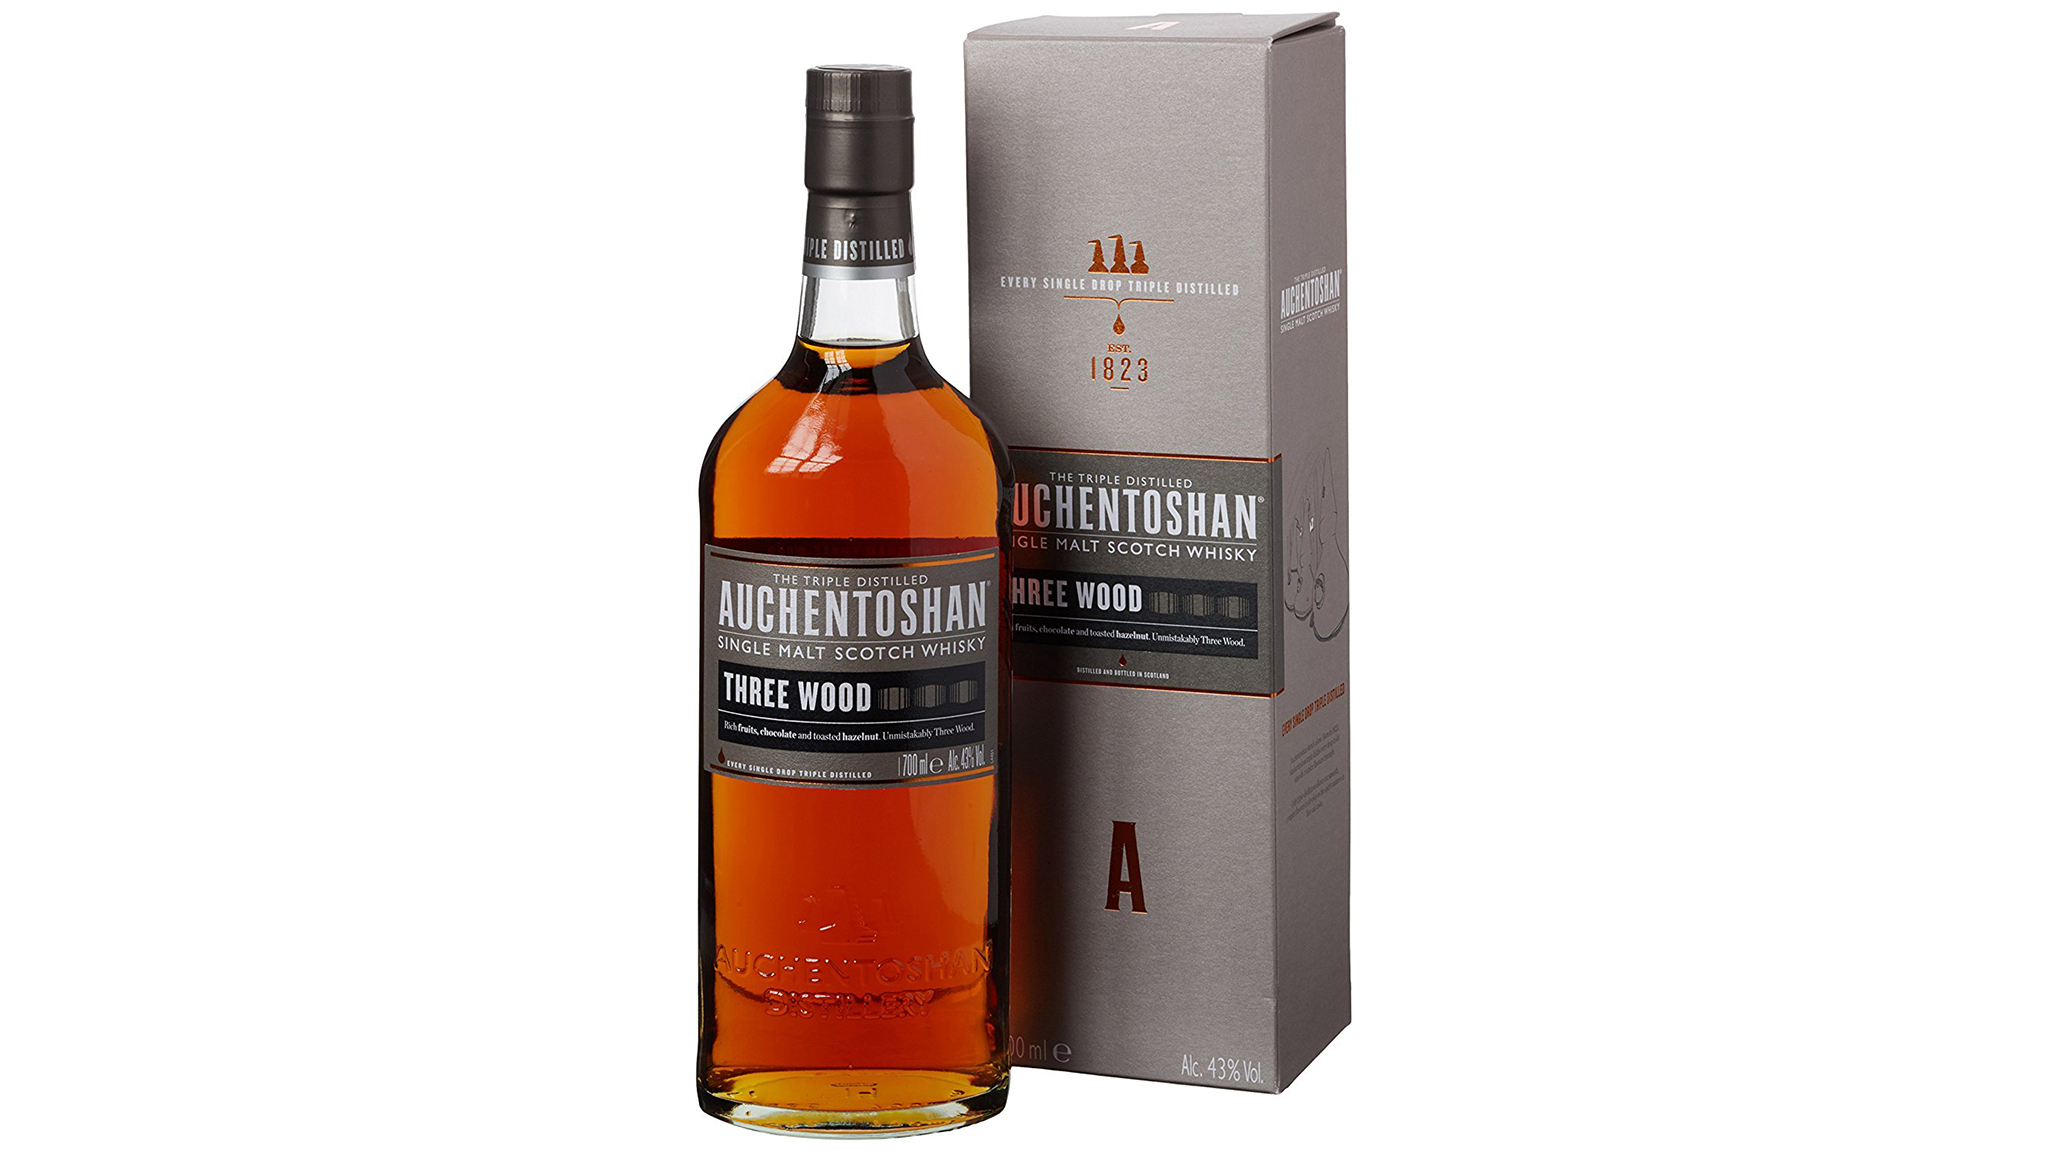 Best Whisky 2018 The Smoothest Scotch Whiskies And Other